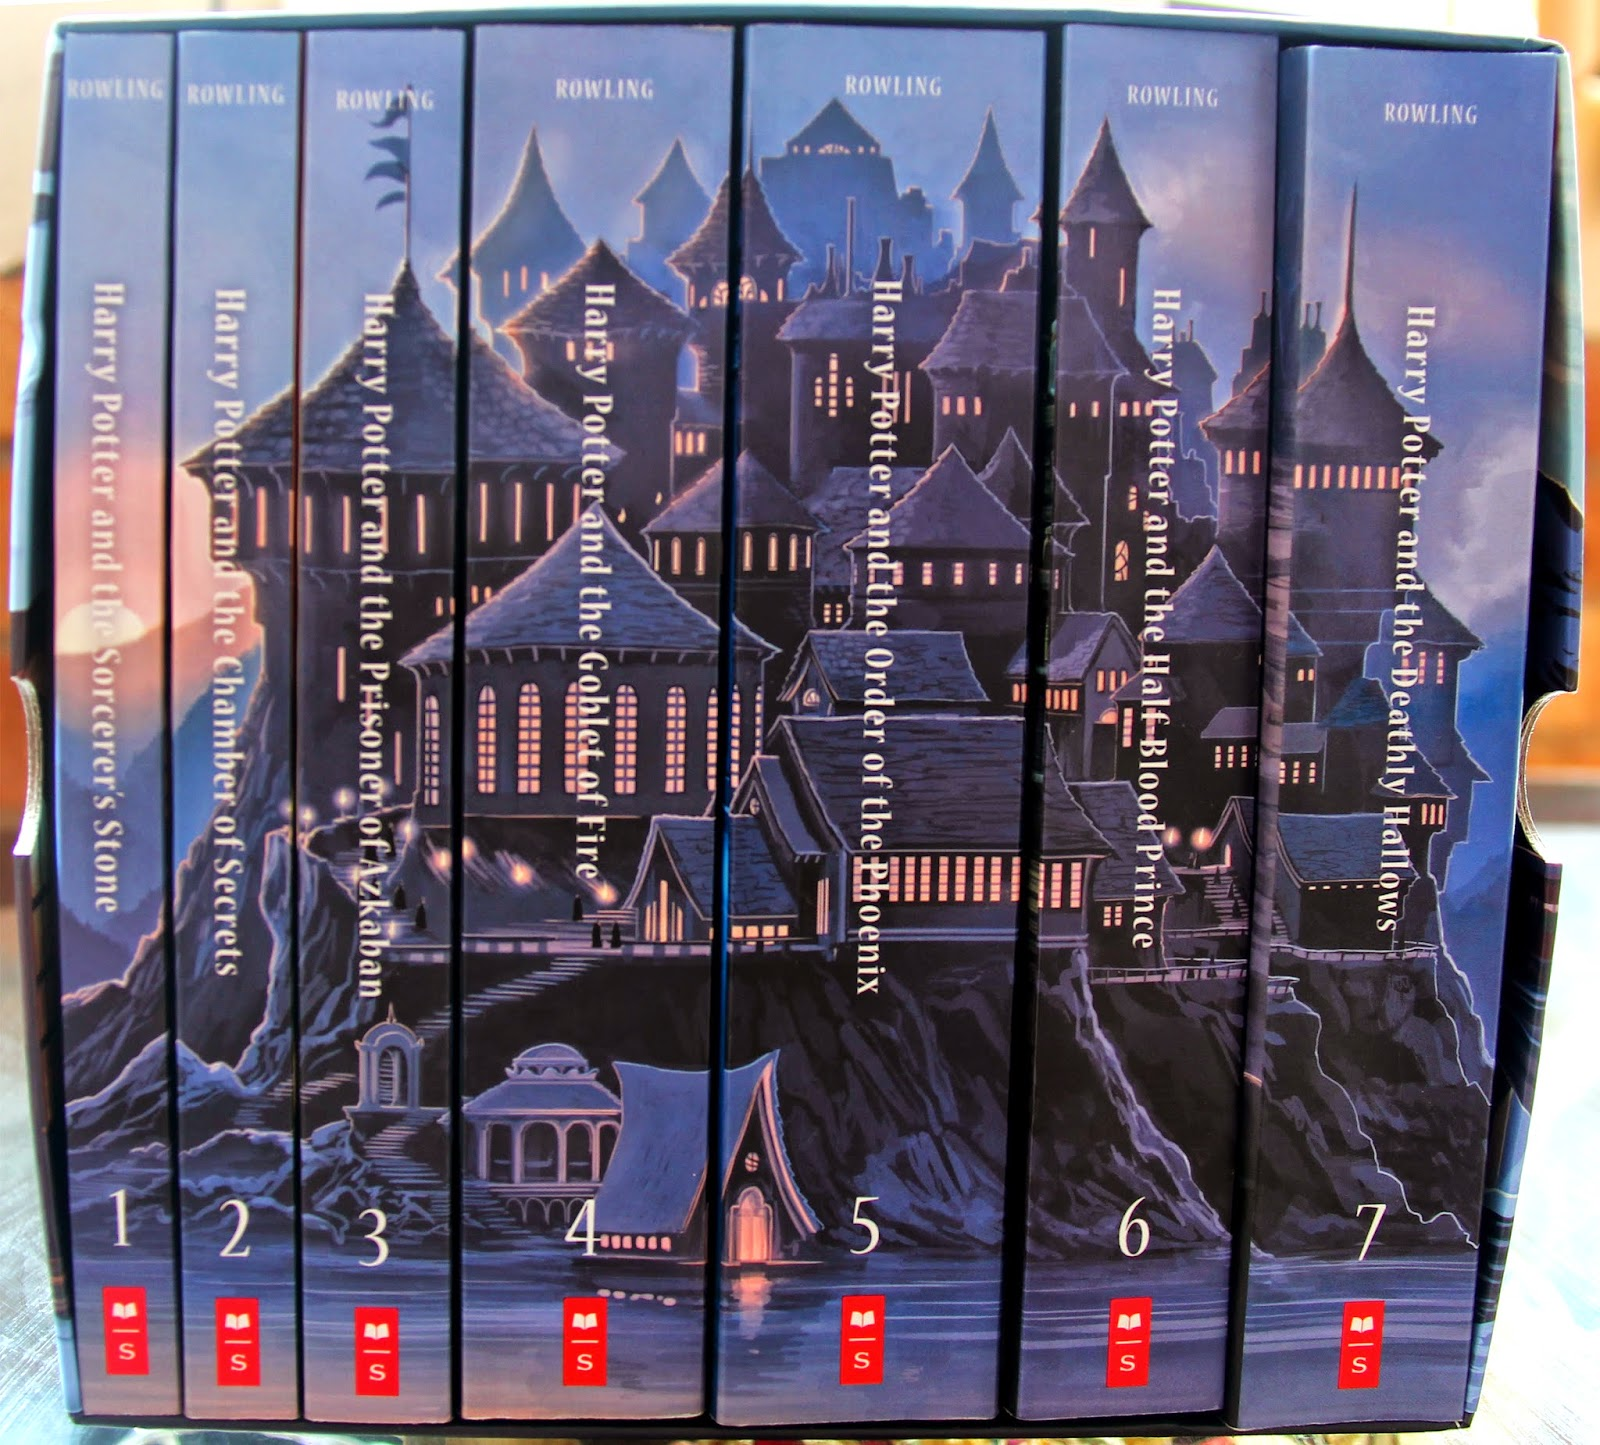 Harry Potter Book Set Costco : Harry potter holiday gift guide for adults